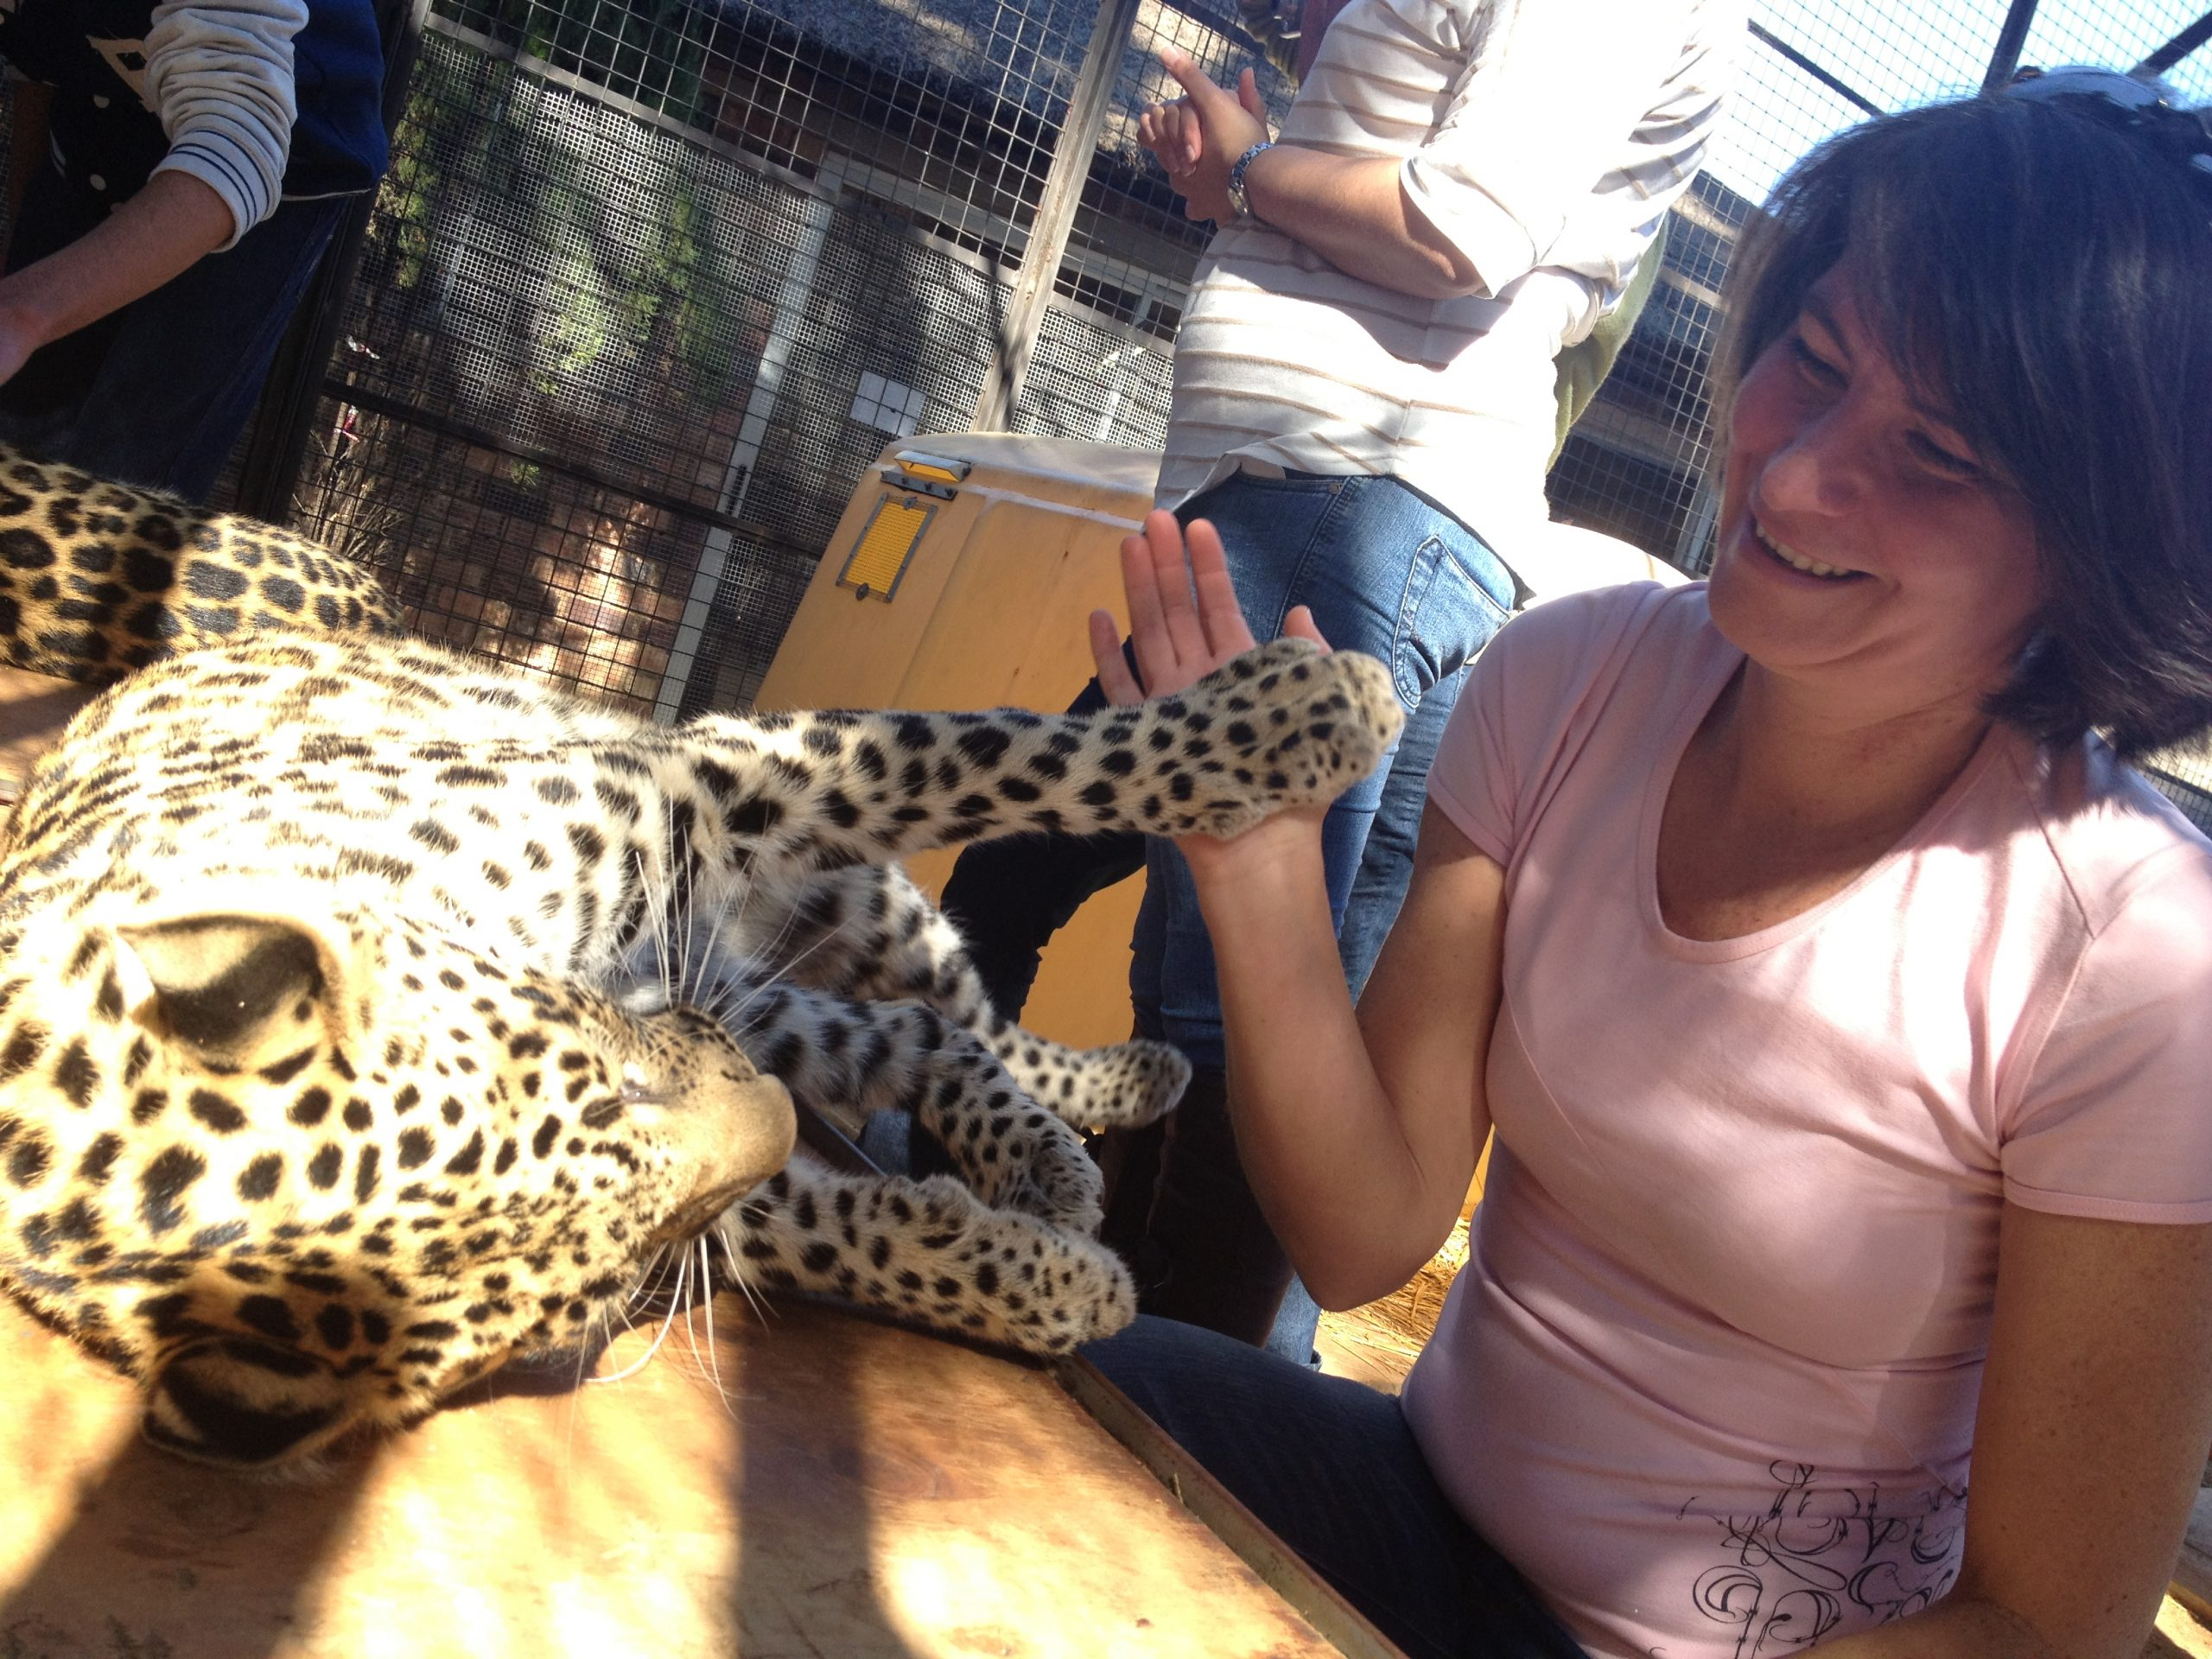 Muscle testing a leopard